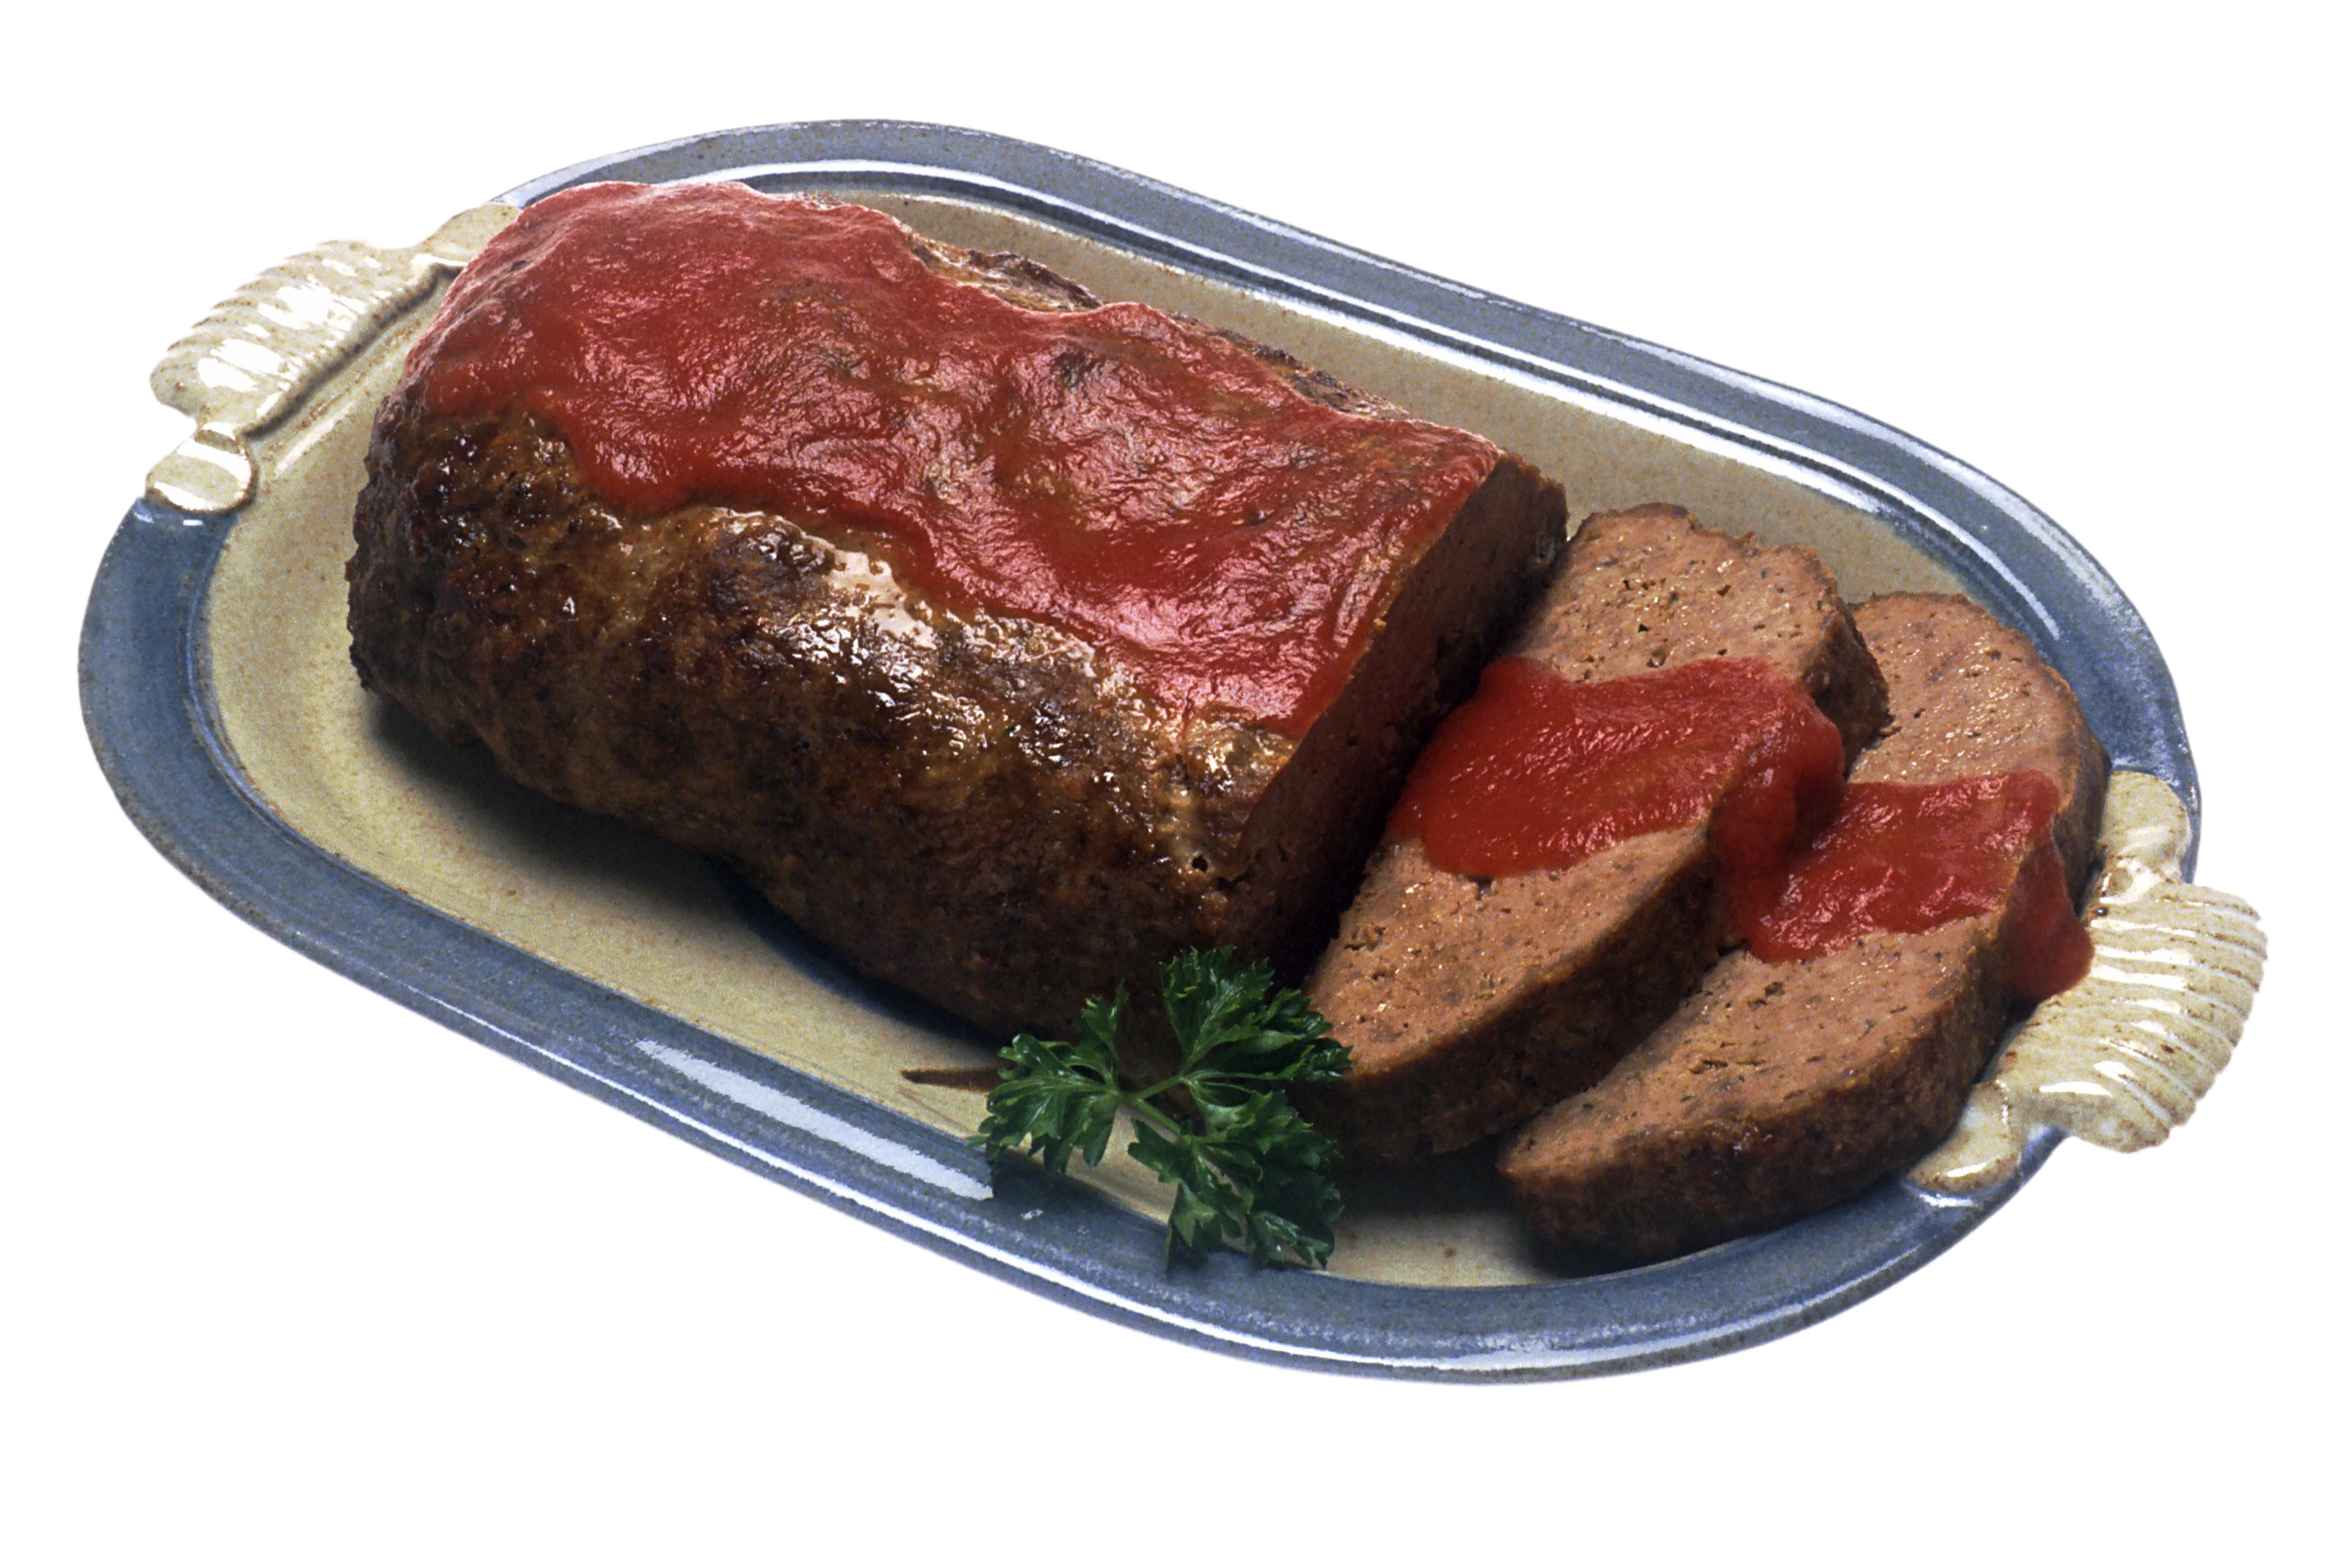 Meatloaf Served With Sauce